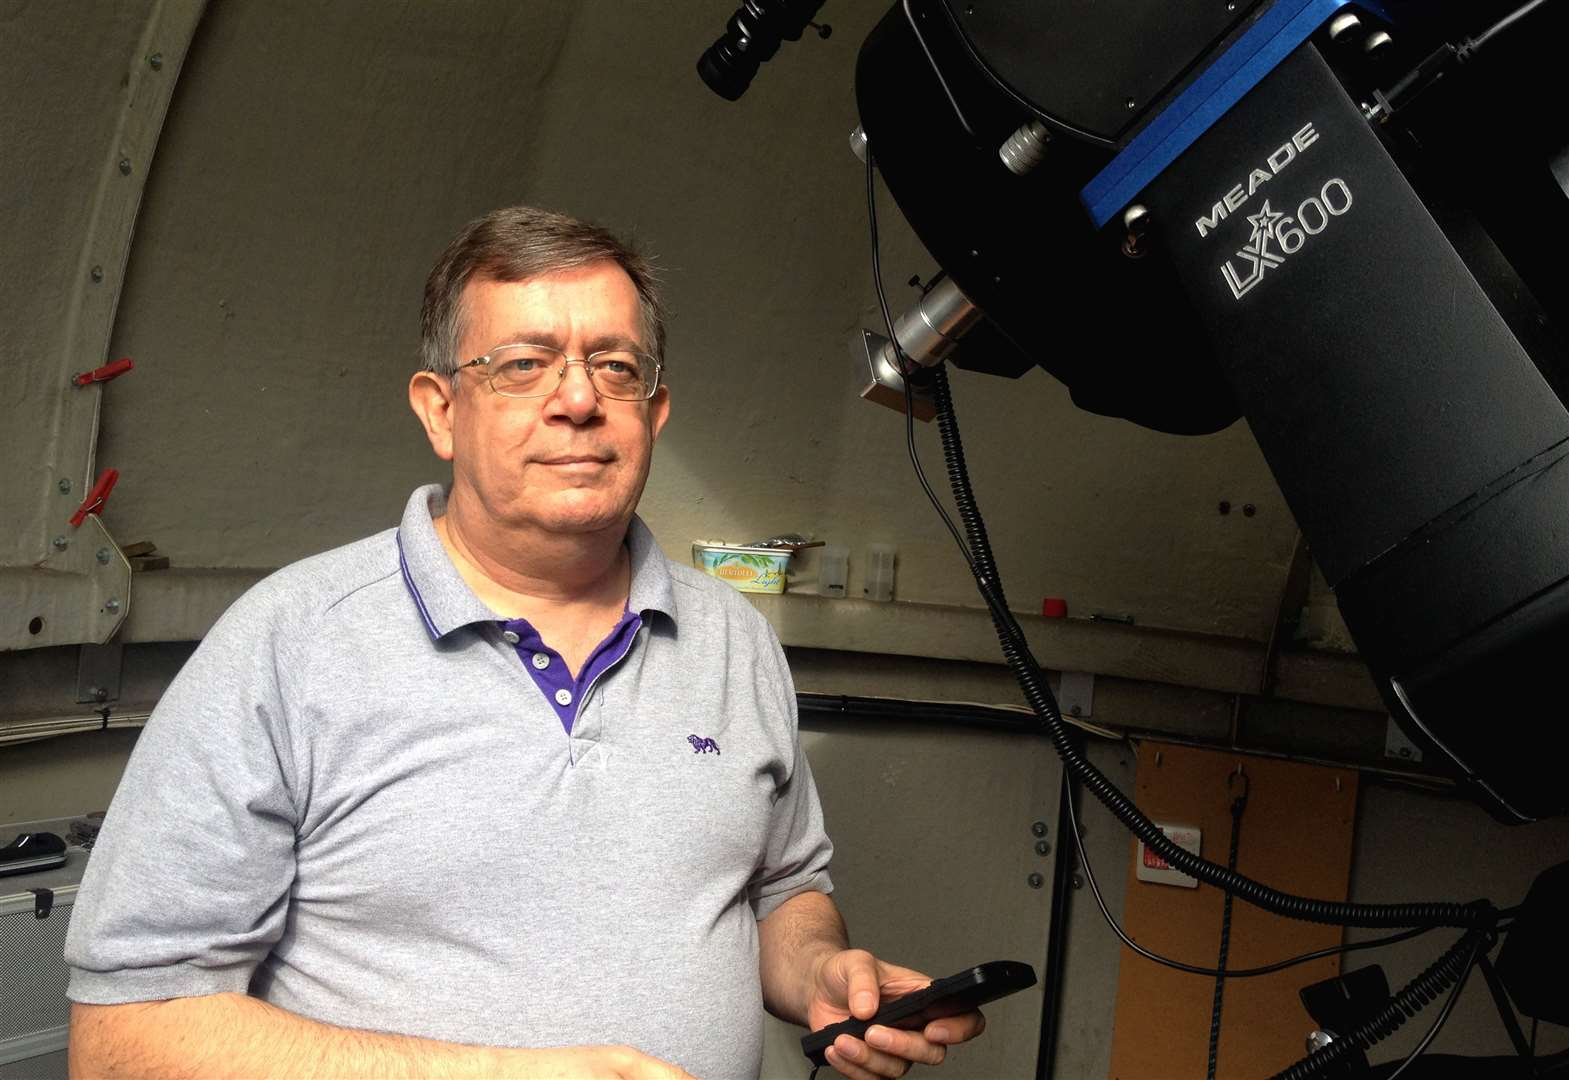 Stargazing with Cambridge Astronomical Association chairman Paul Fellows